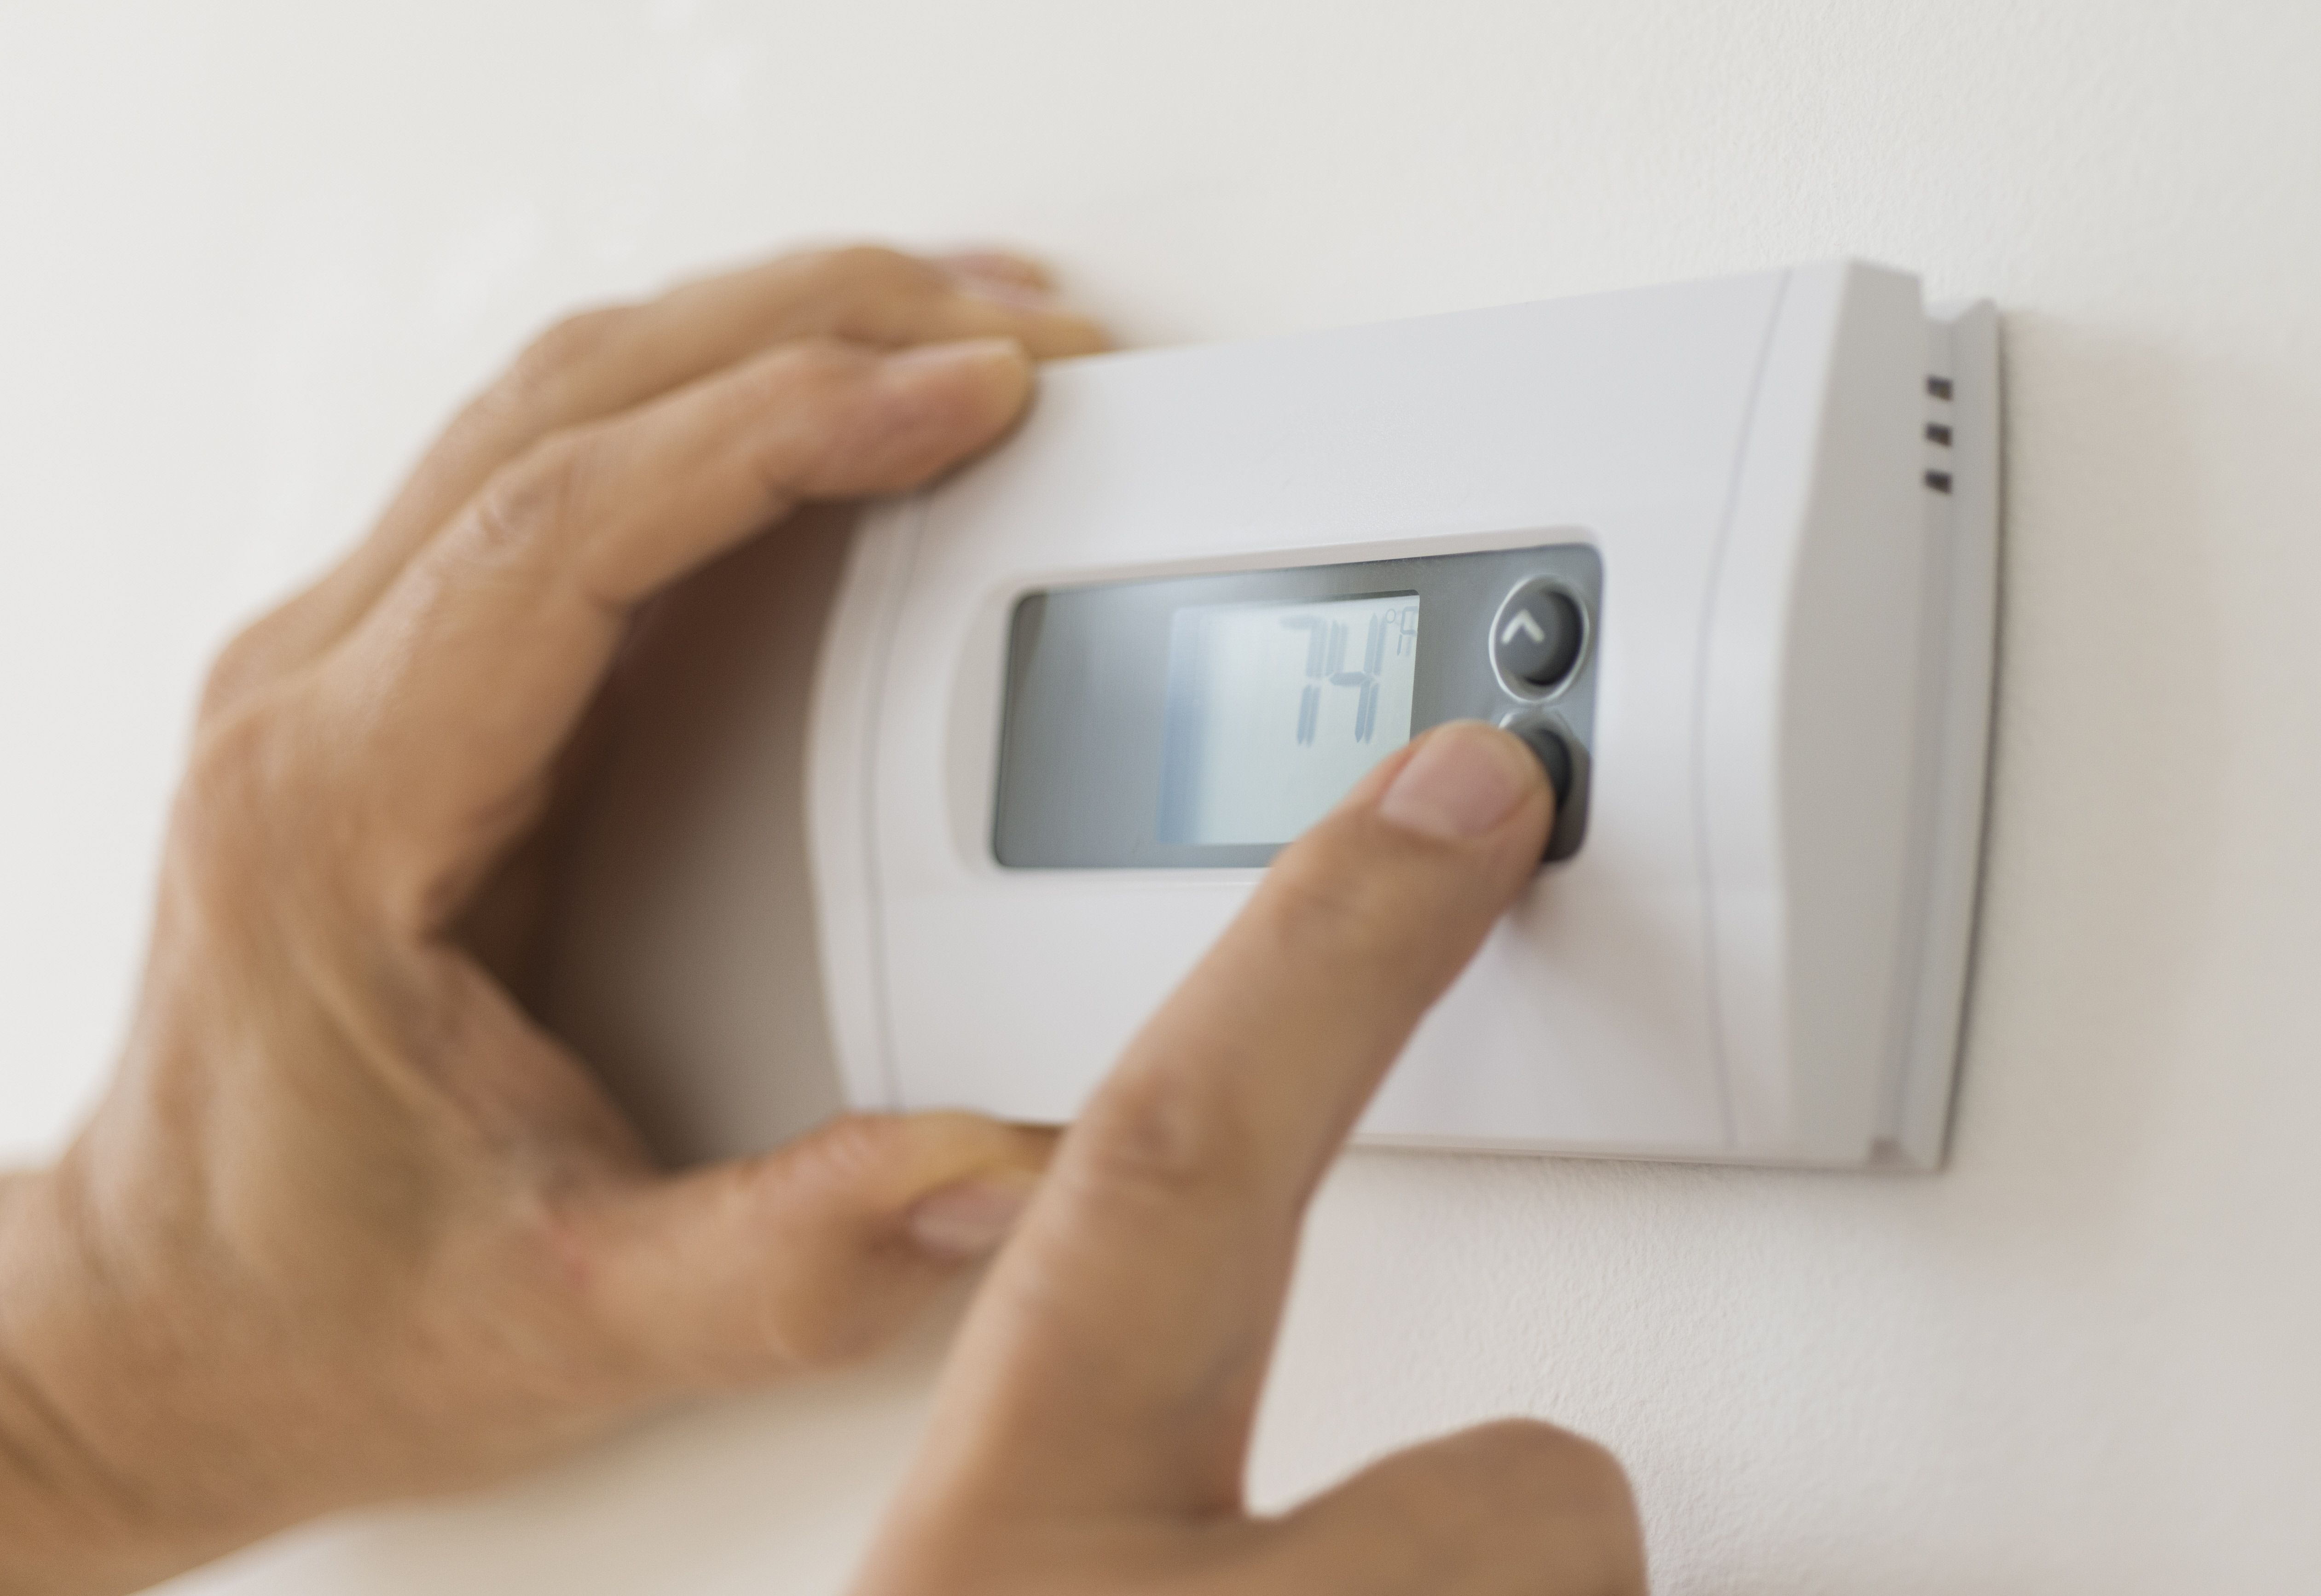 How to Change the Battery in a Honeywell Thermostat Air